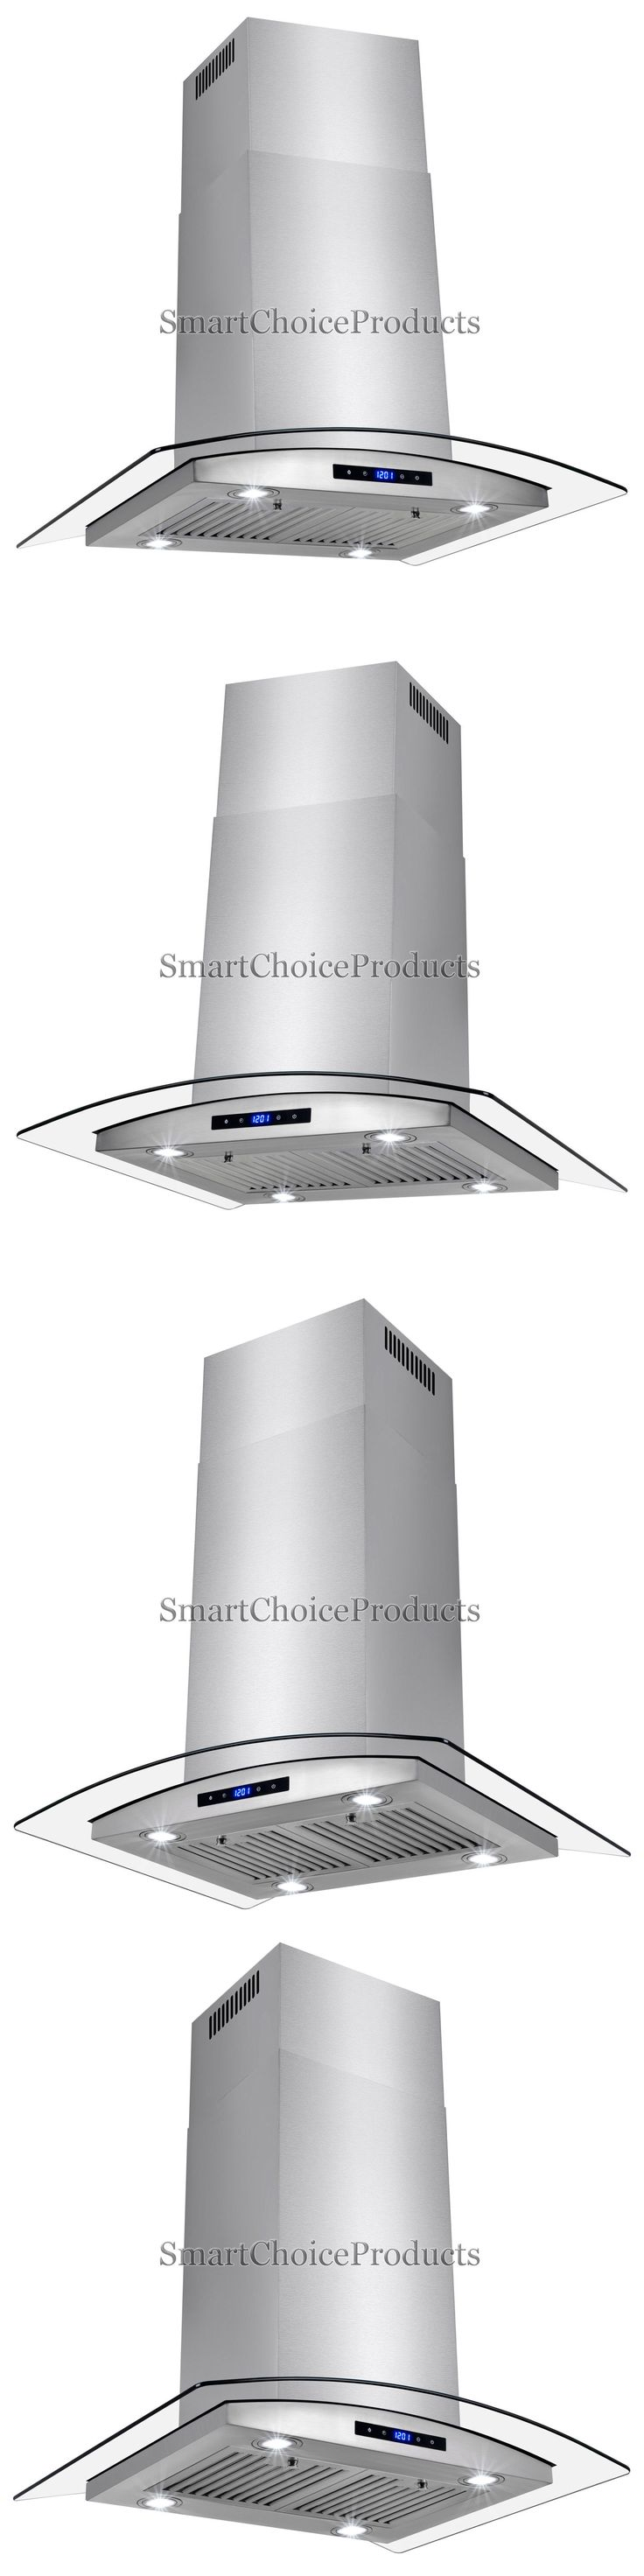 Range Hoods 71253: 36 Kitchen Island Mount Canapy Stainless Steel Range Hood Vent Baffle Filters -> BUY IT NOW ONLY: $249.99 on eBay!